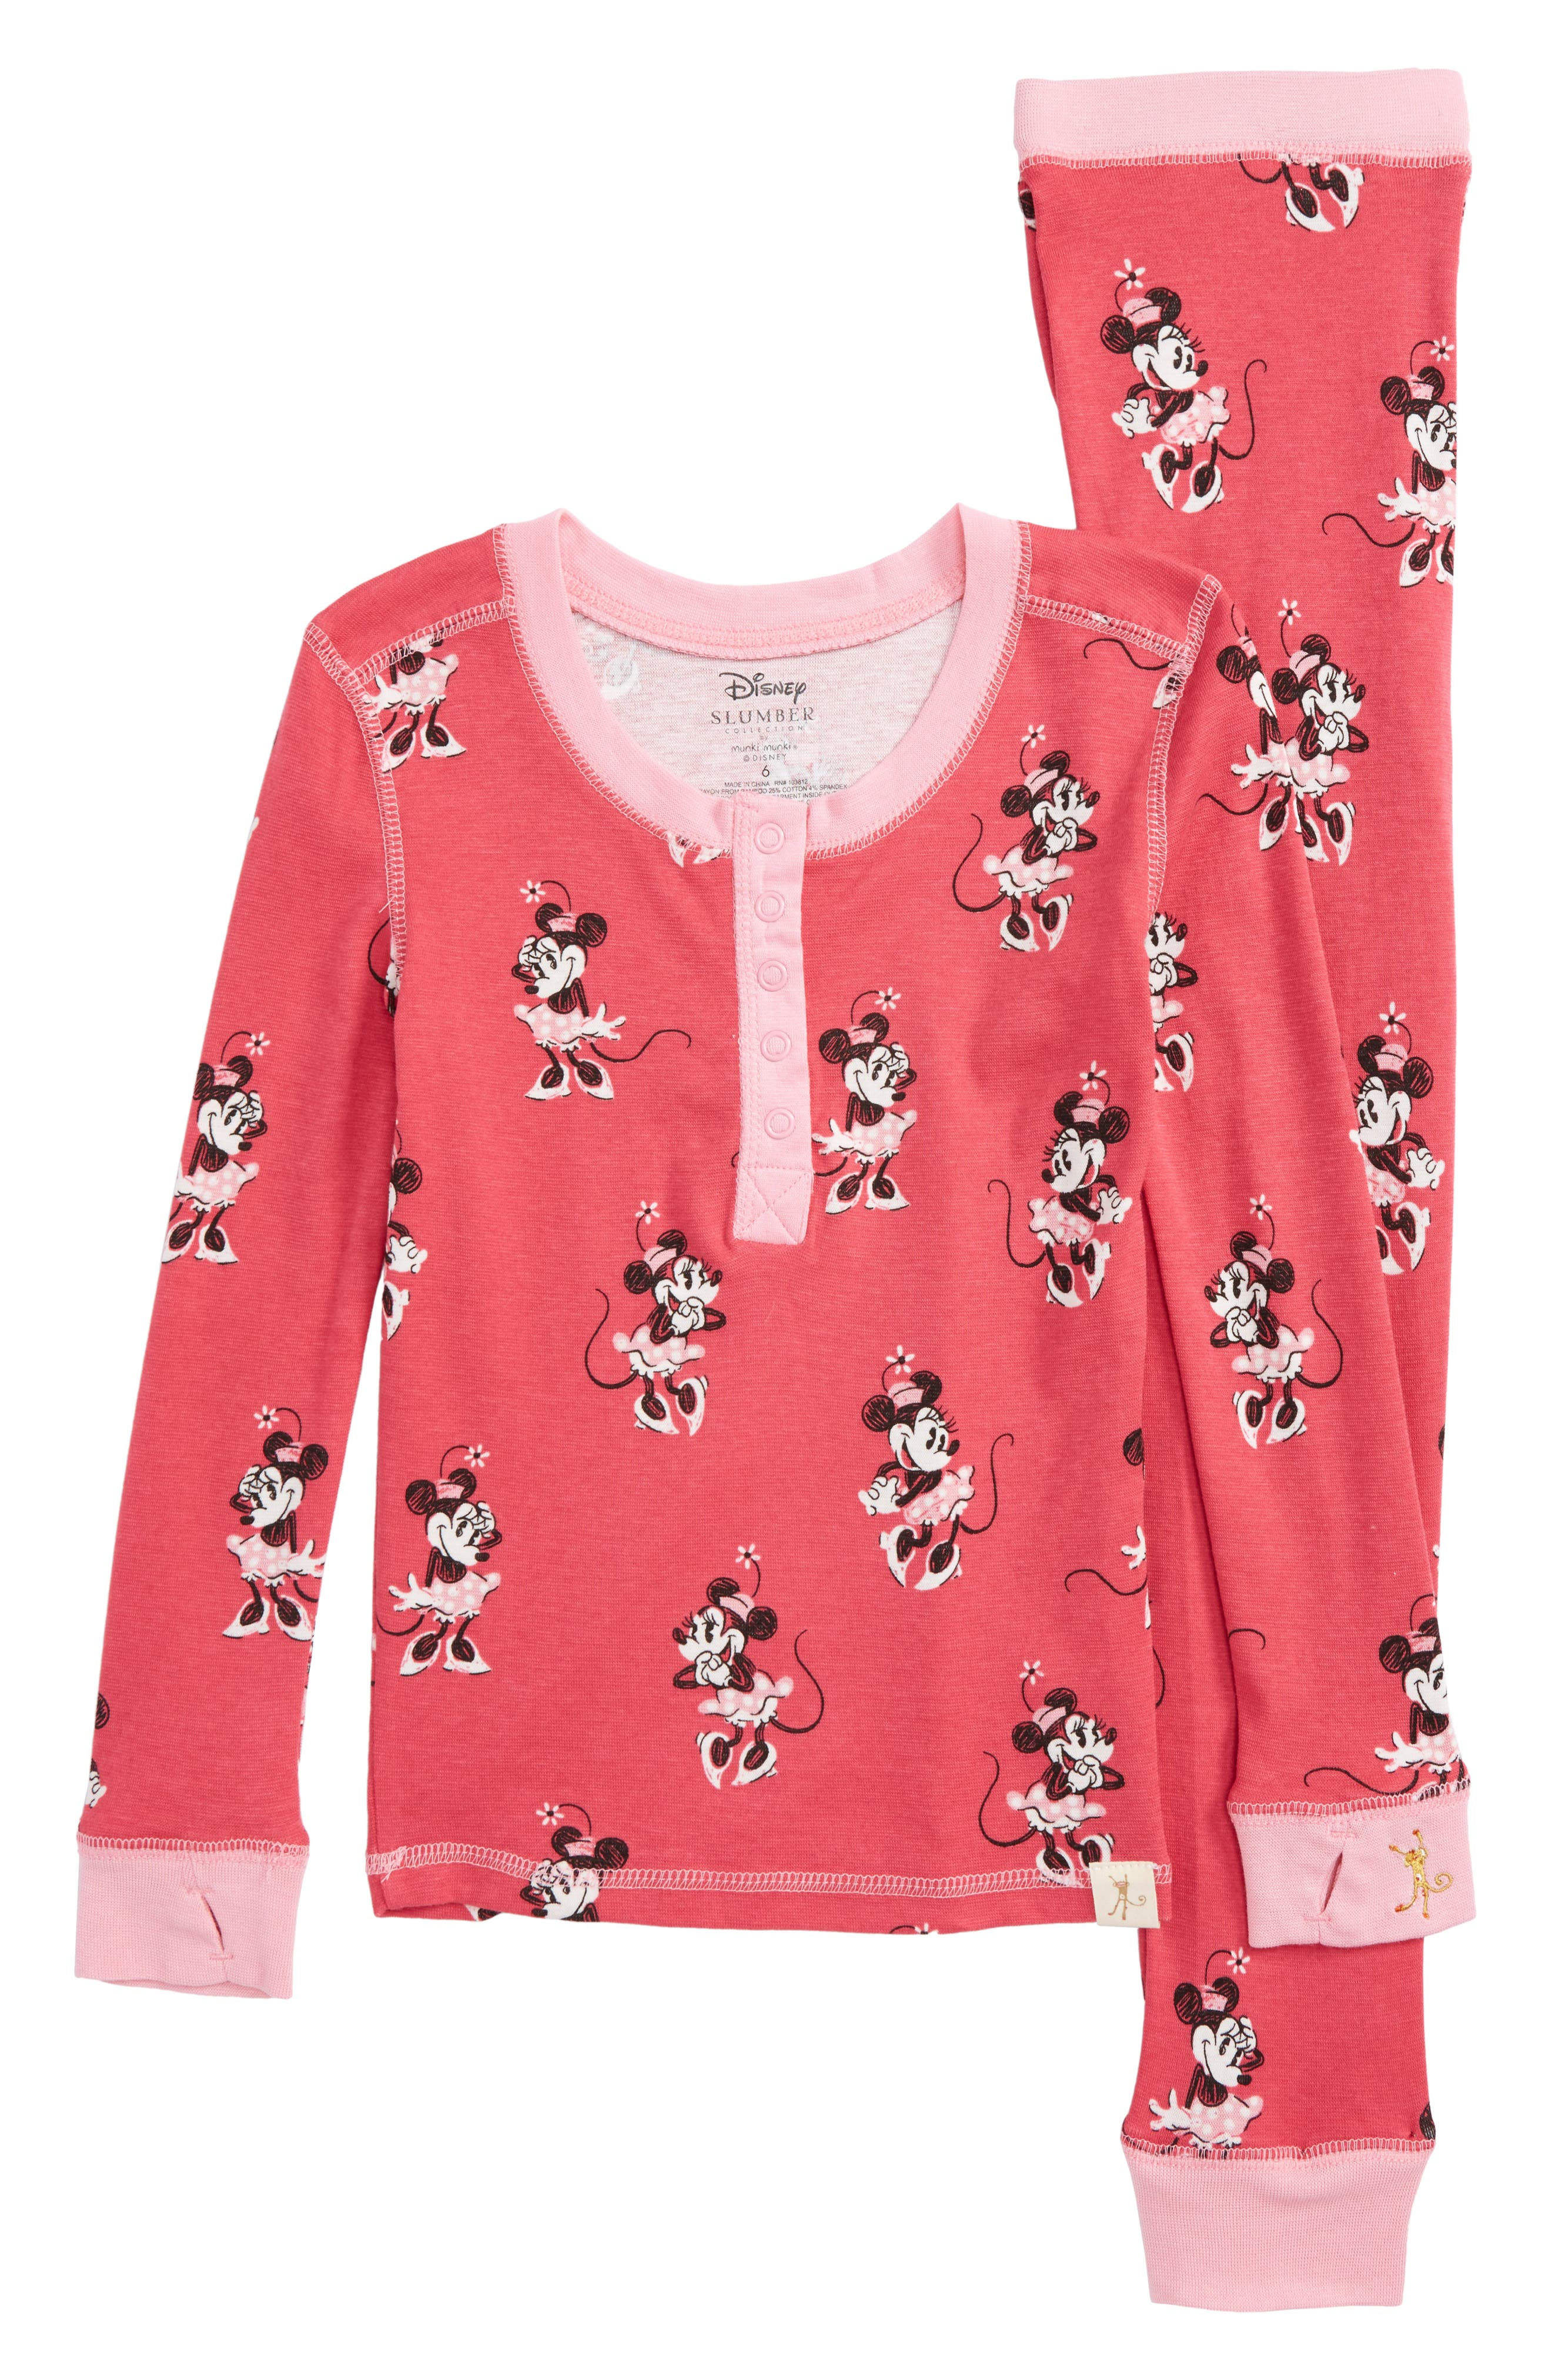 Disney – Minnie Mouse Fitted Two-Piece Pajamas,                             Main thumbnail 1, color,                             Pink Blush Minnie